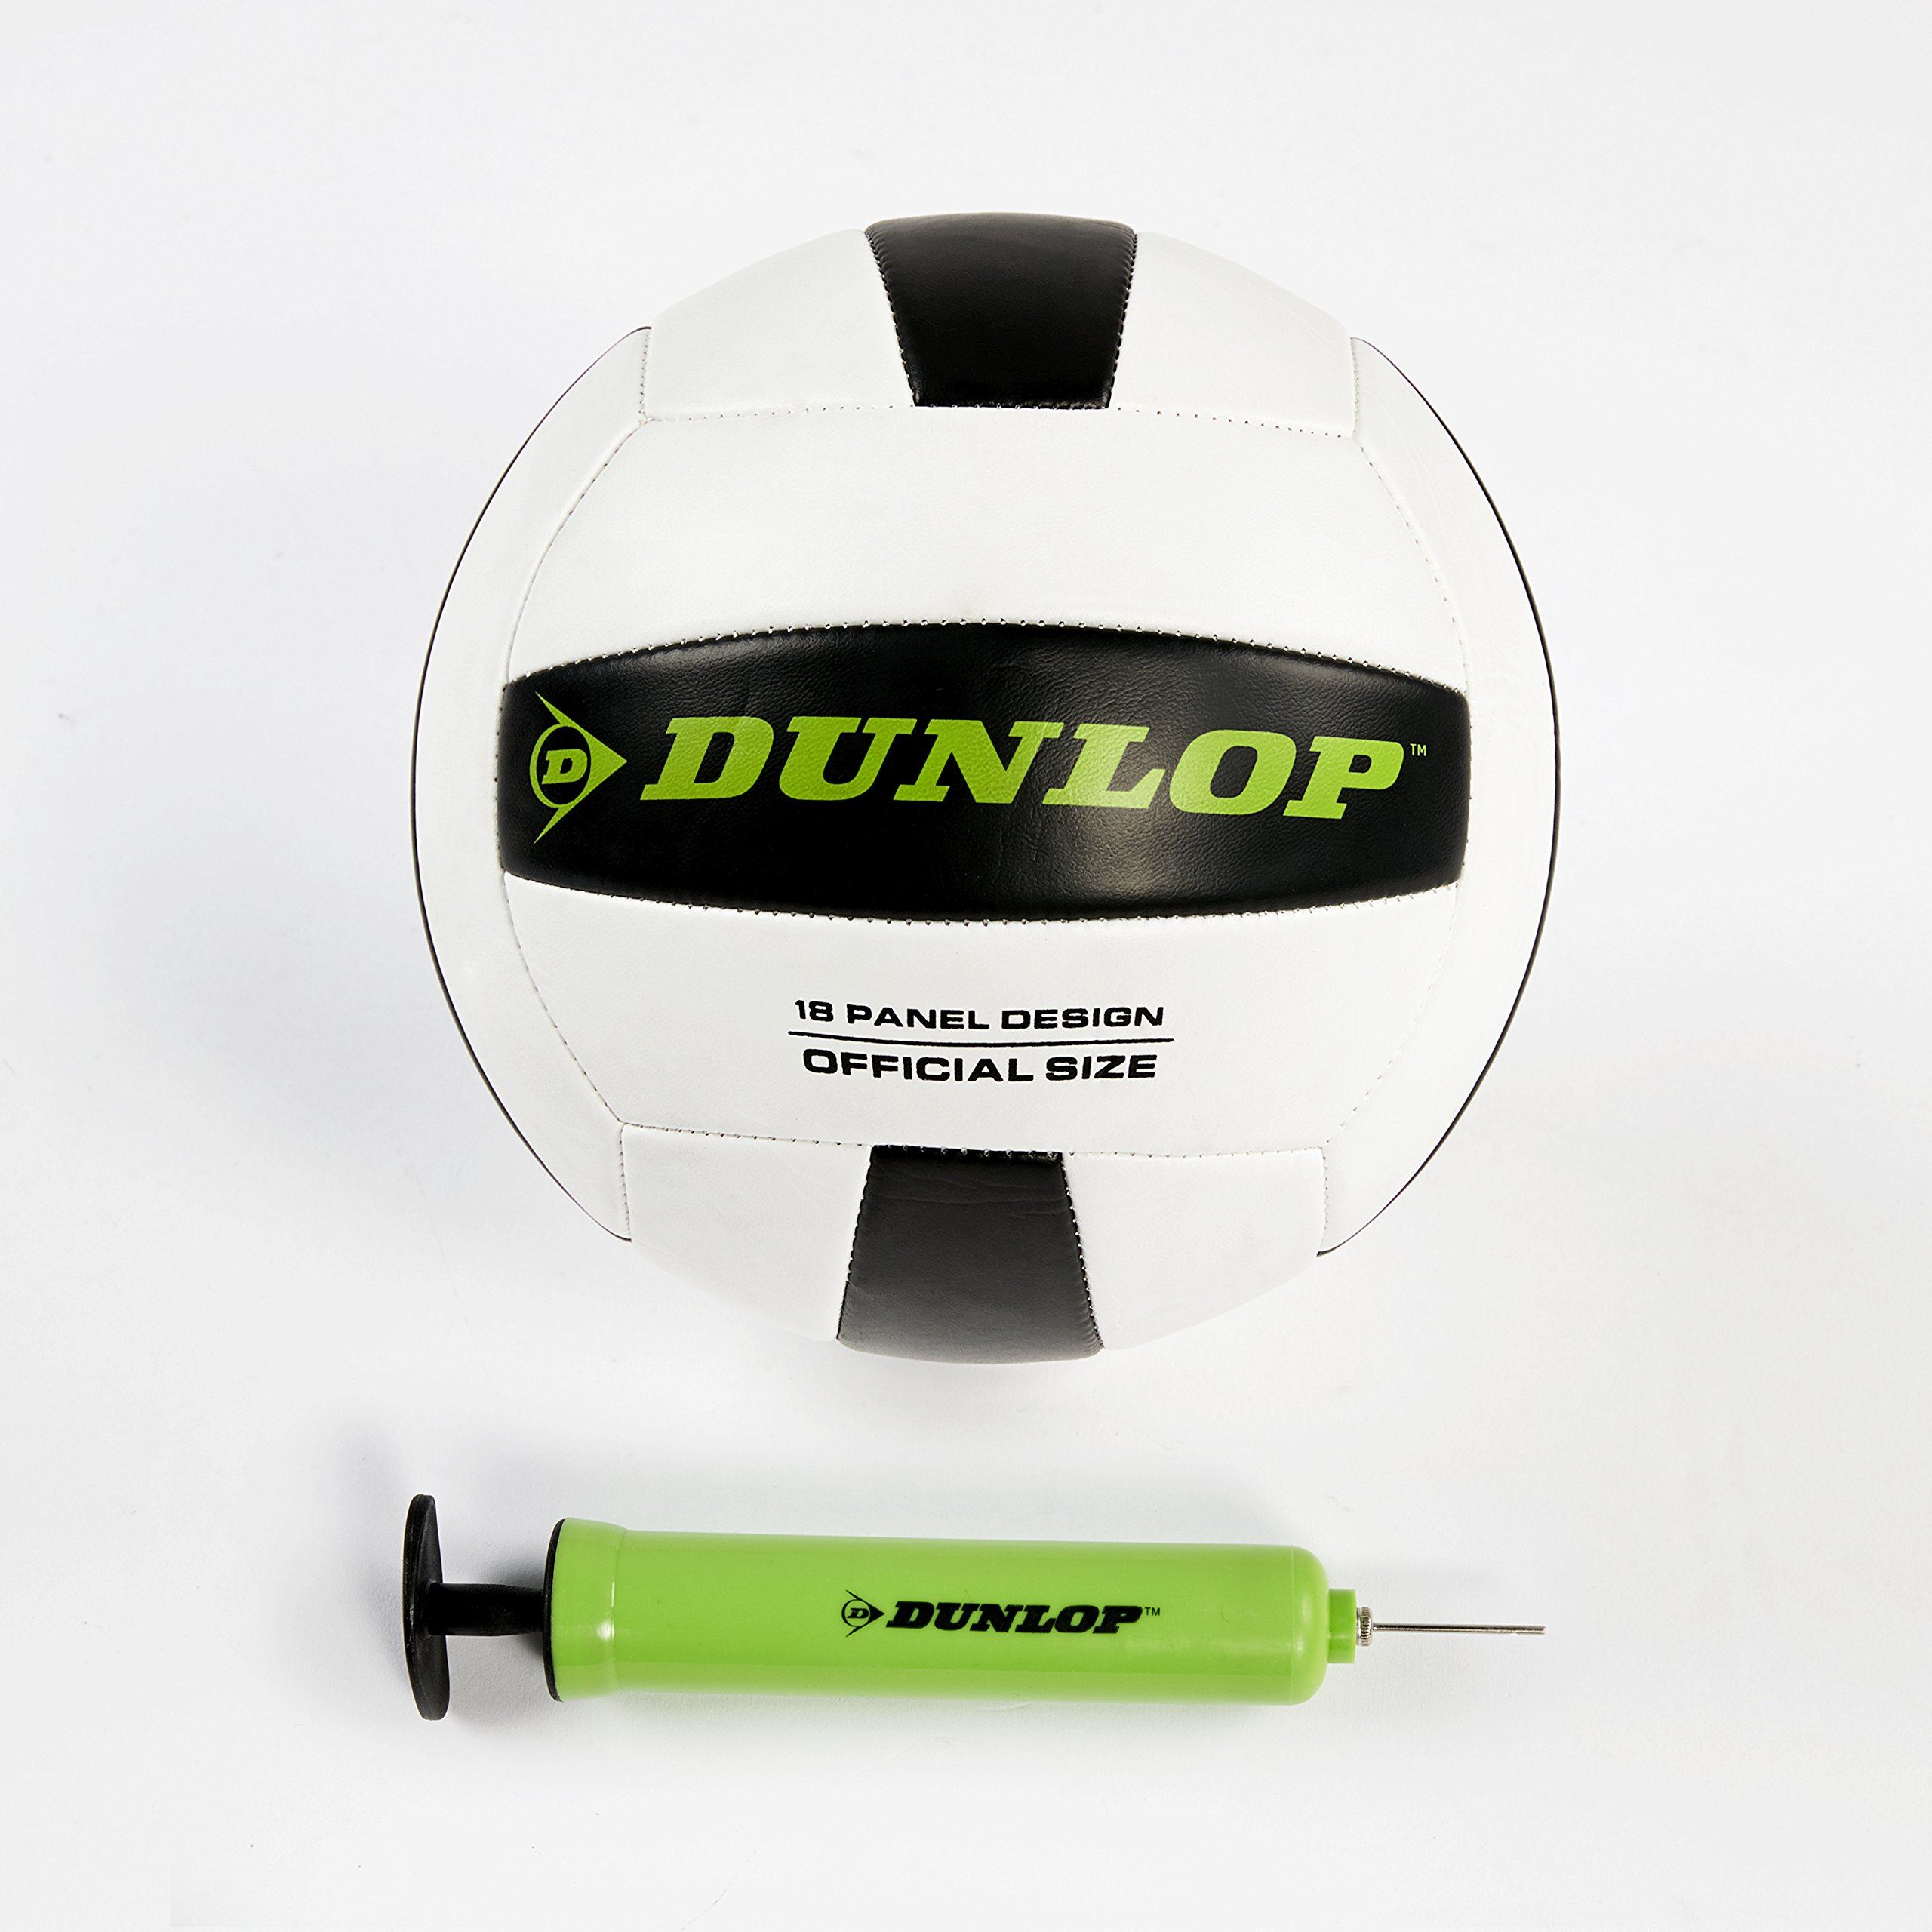 Dunlop Professional Volleyball Badminton Games: Classic Outdoor Lawn Game Set with Carry Bag by Dunlop (Image #11)